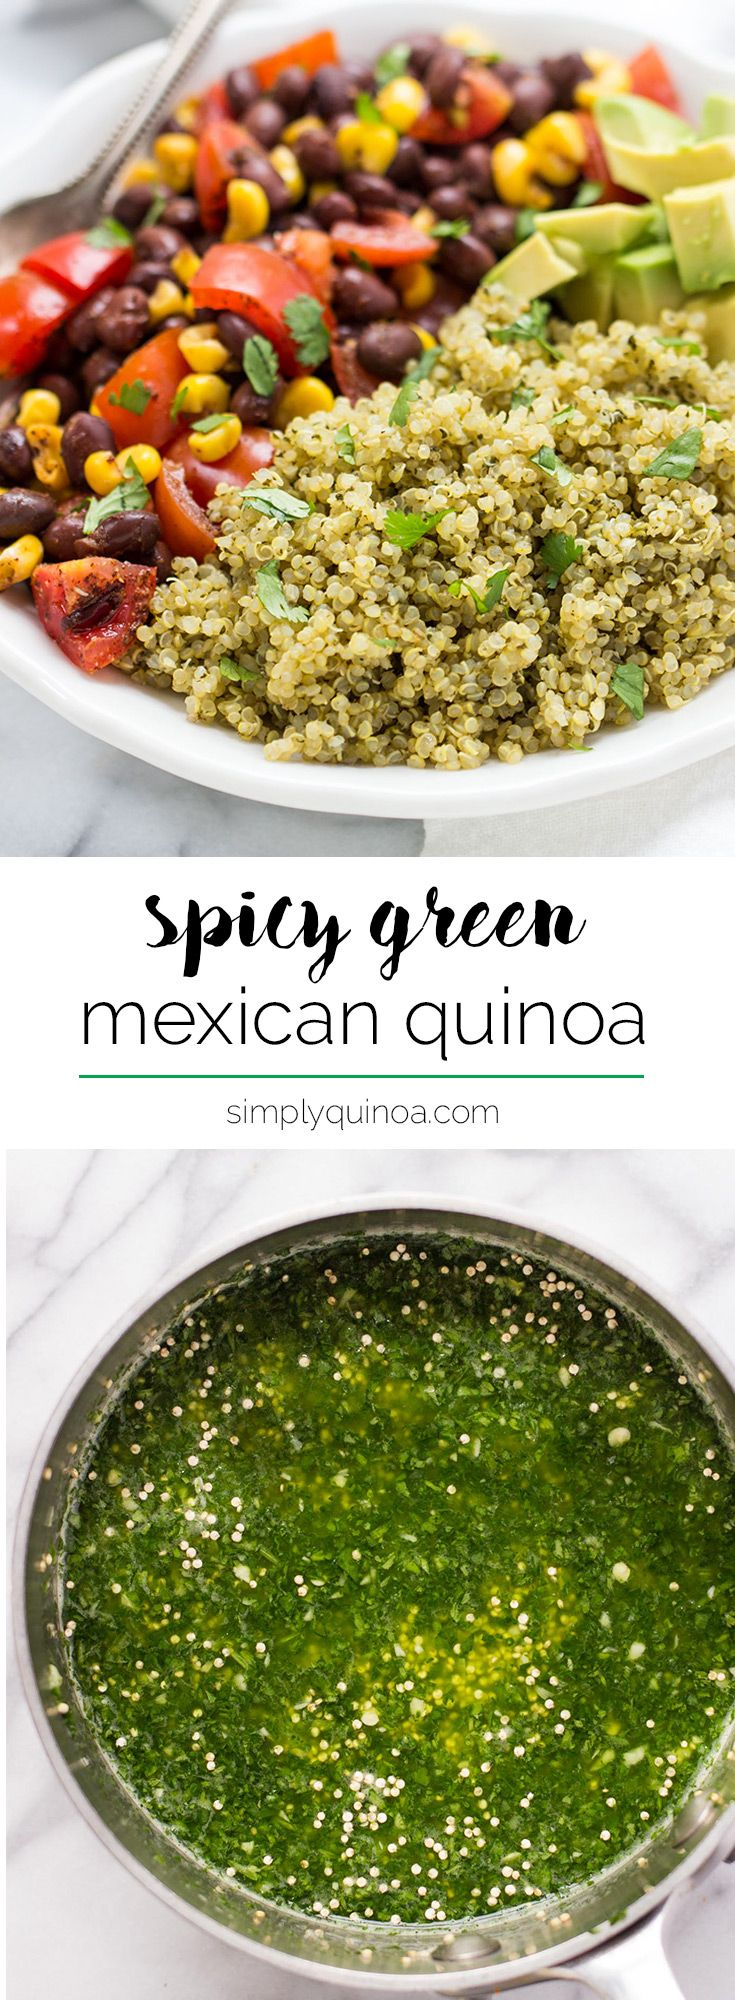 Tasty mexican quinoa recipes on pinterest easy vegan dinner spicy green mexican quinoa ccuart Images